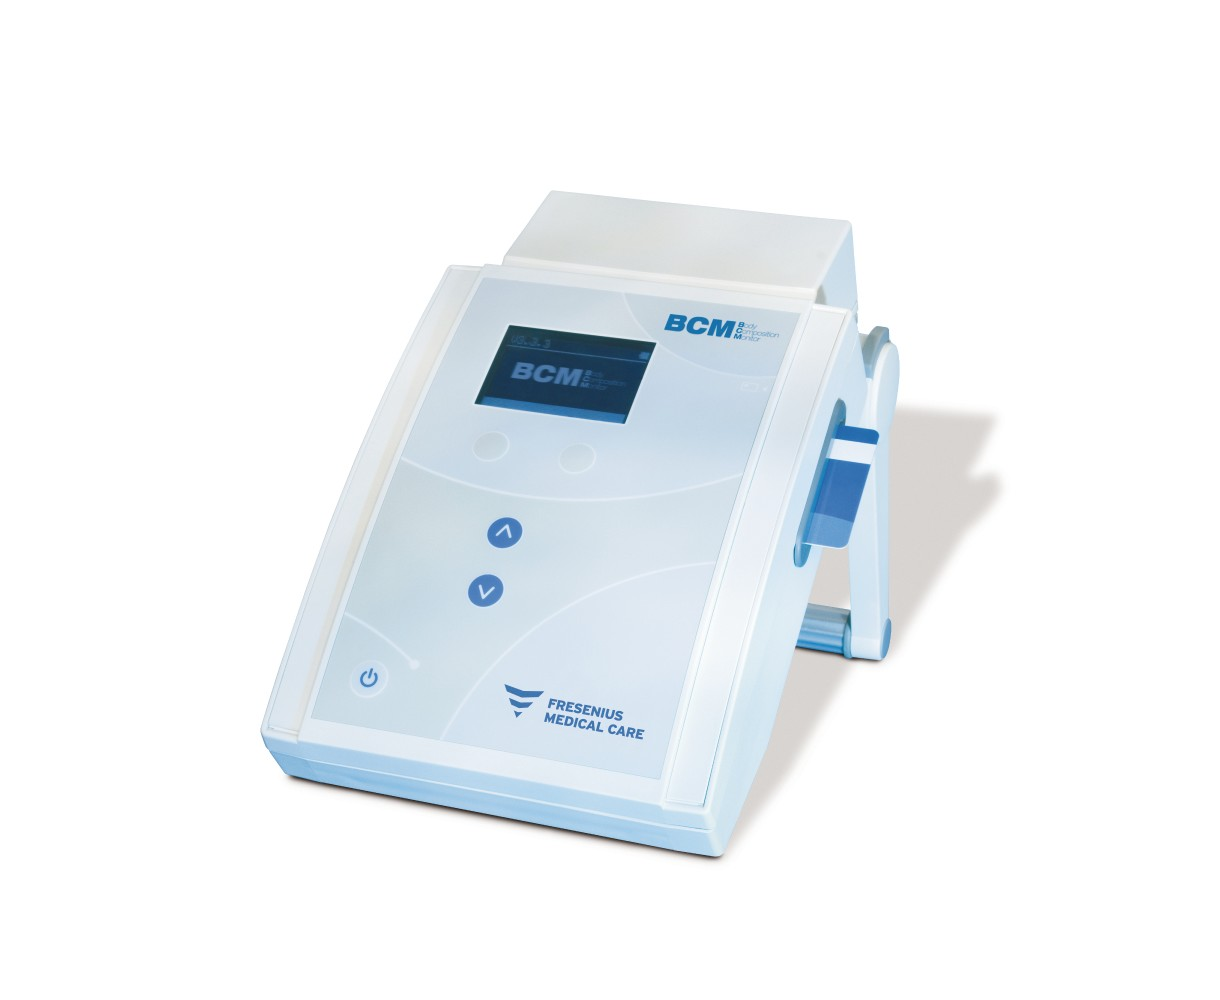 Body Composition Monitor from Fresenius Medical Care